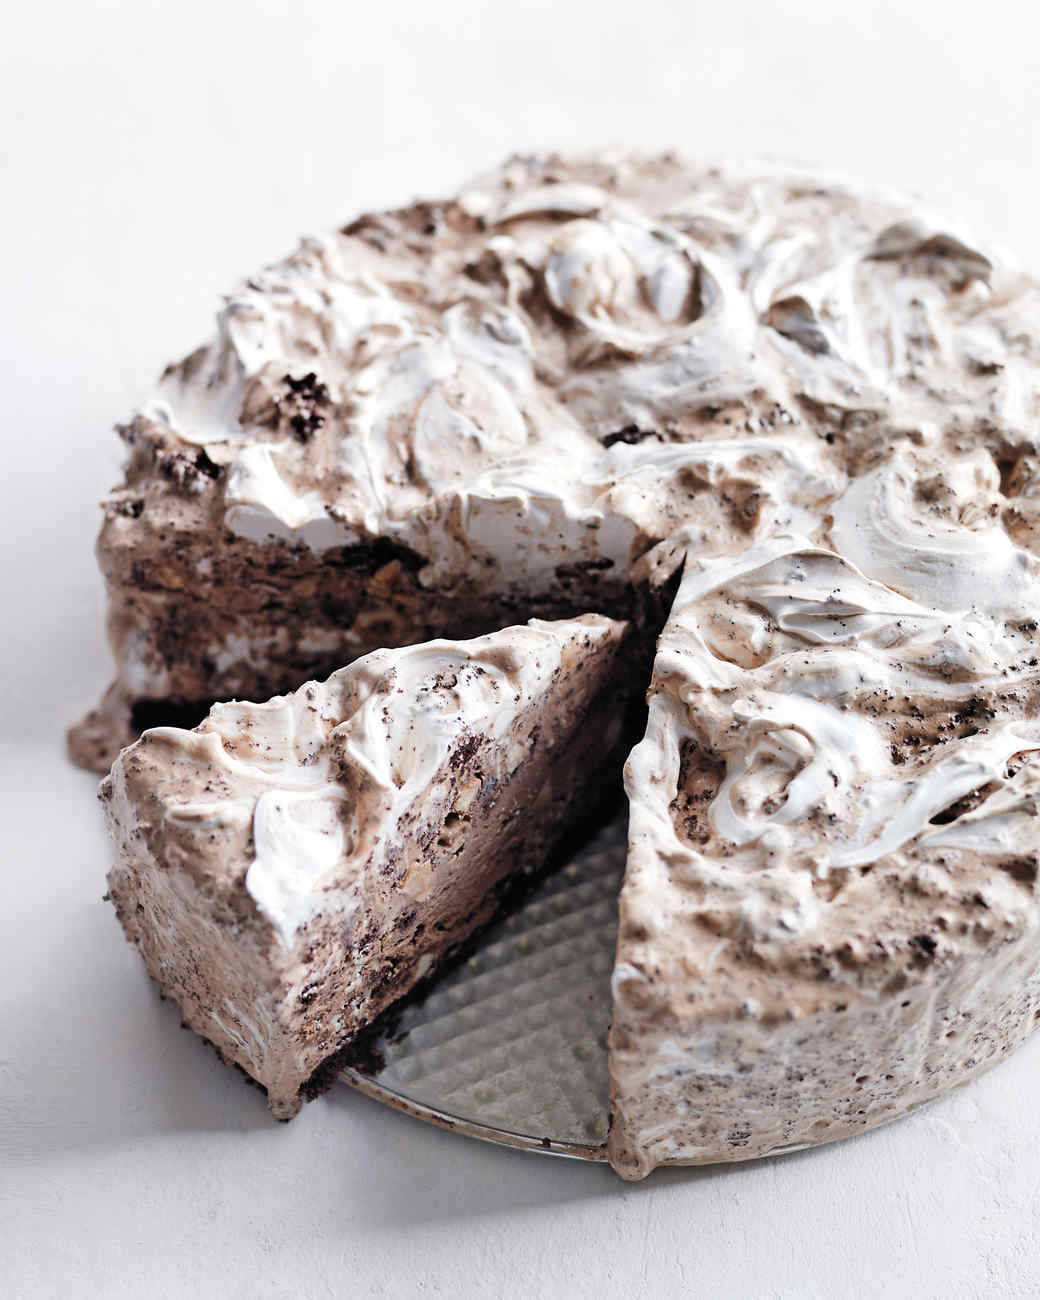 Oreo Homemade Ice Cream Cake